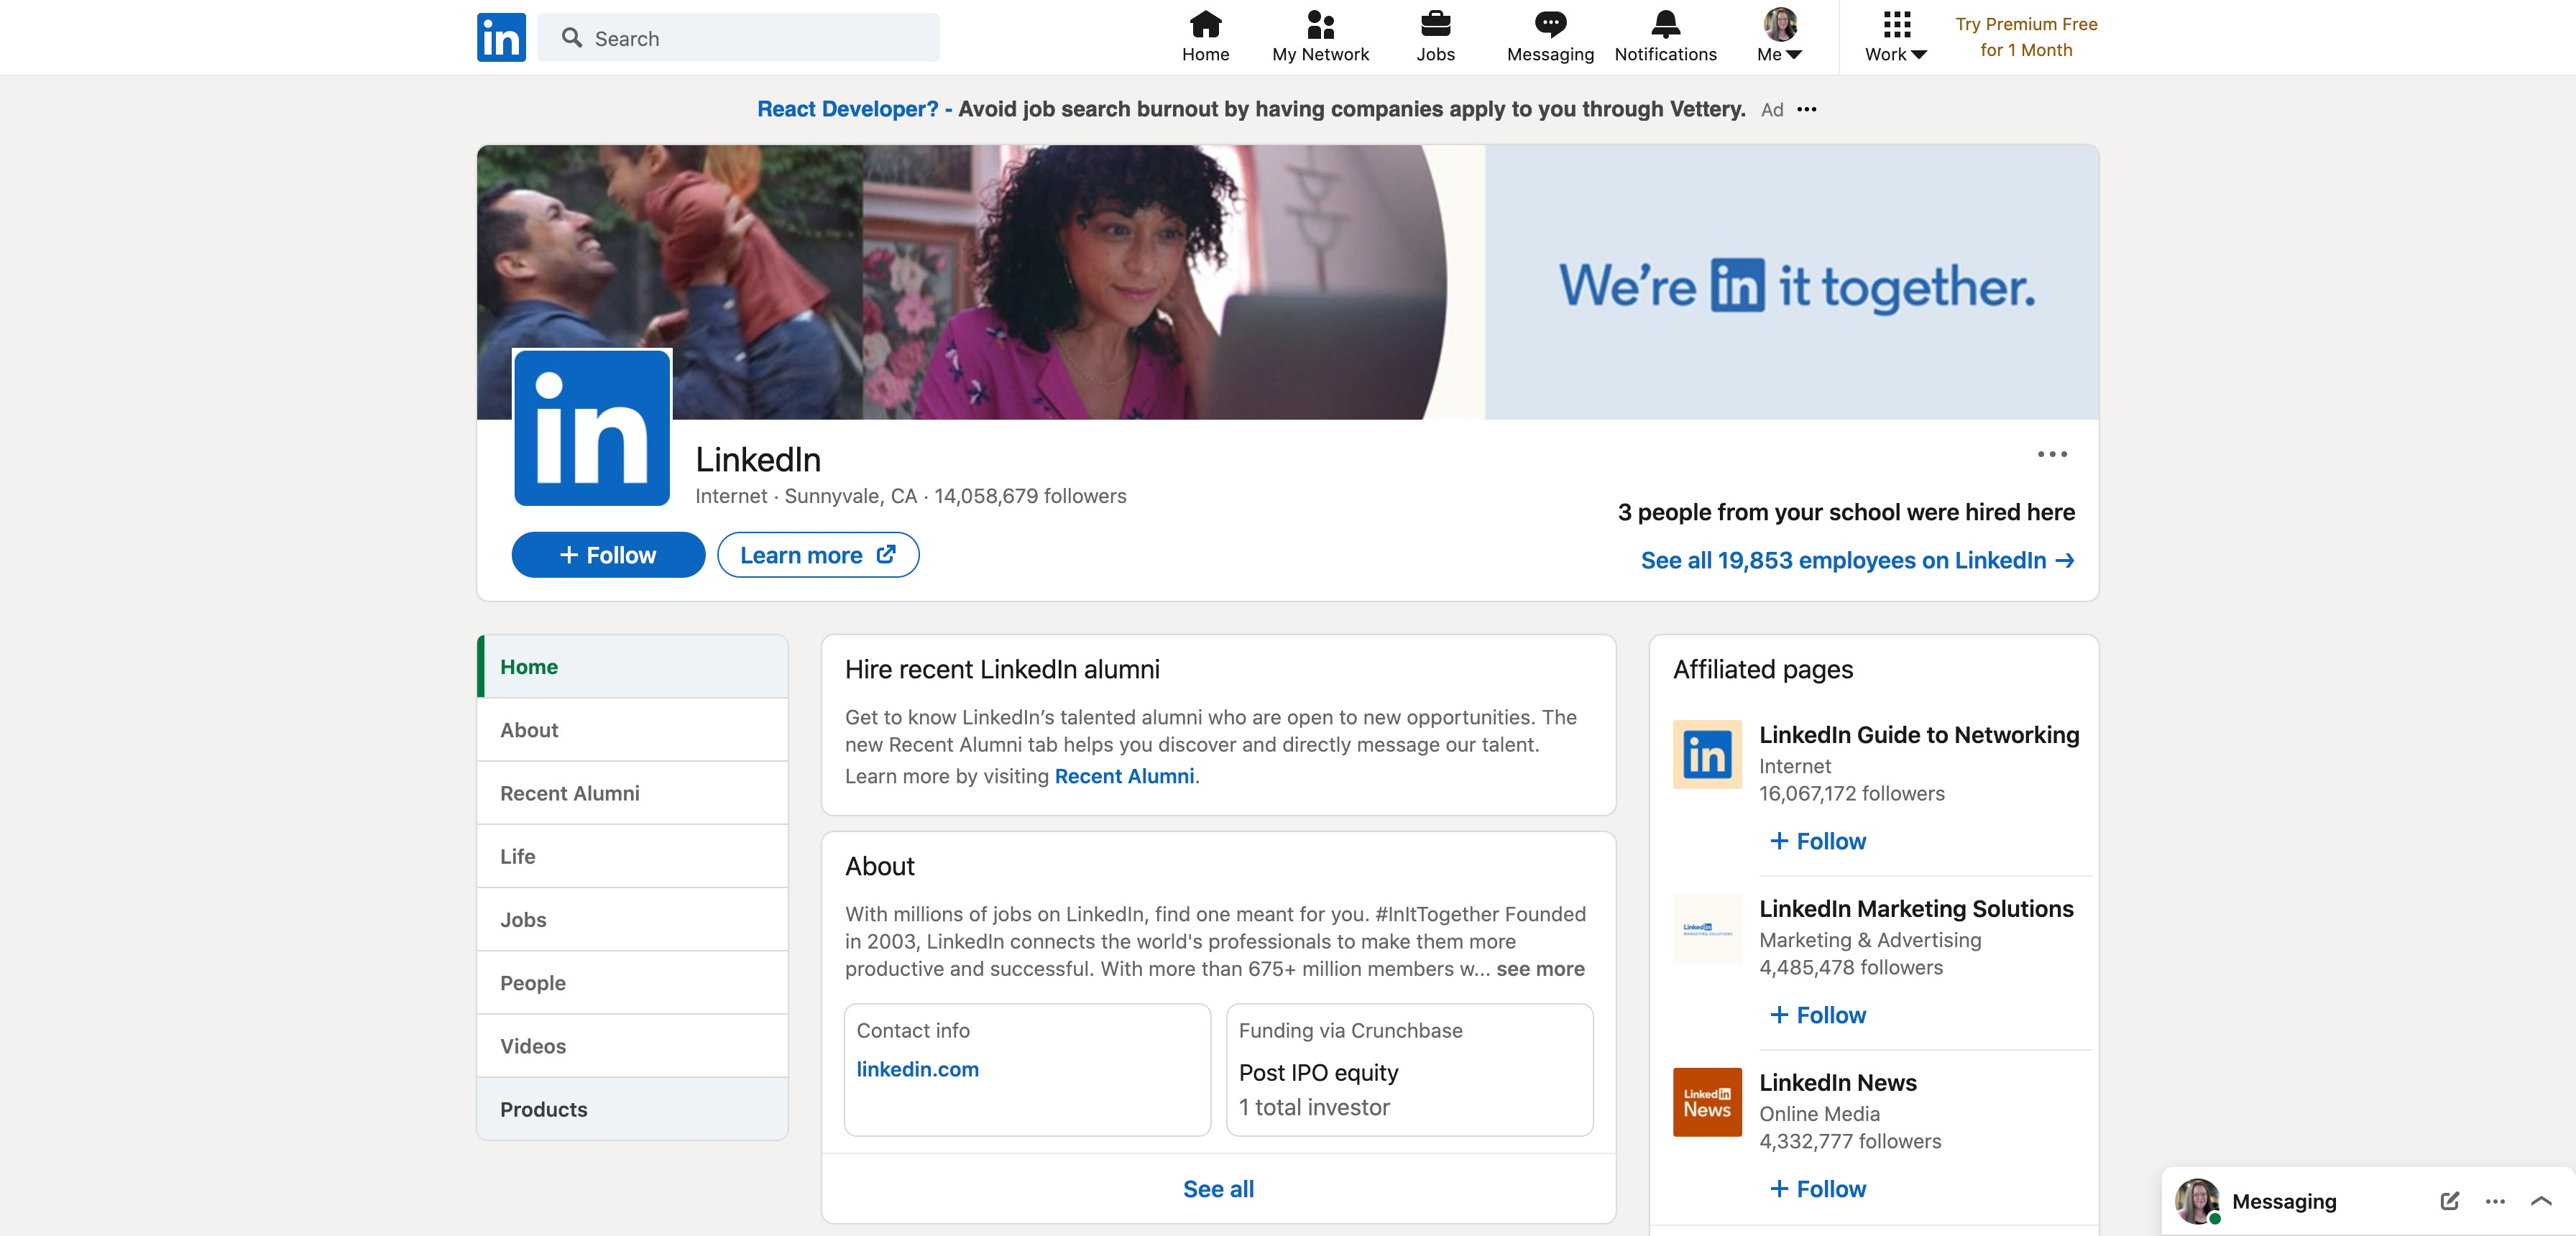 LinkedIn adds new 'Products' highlight tab on company pages